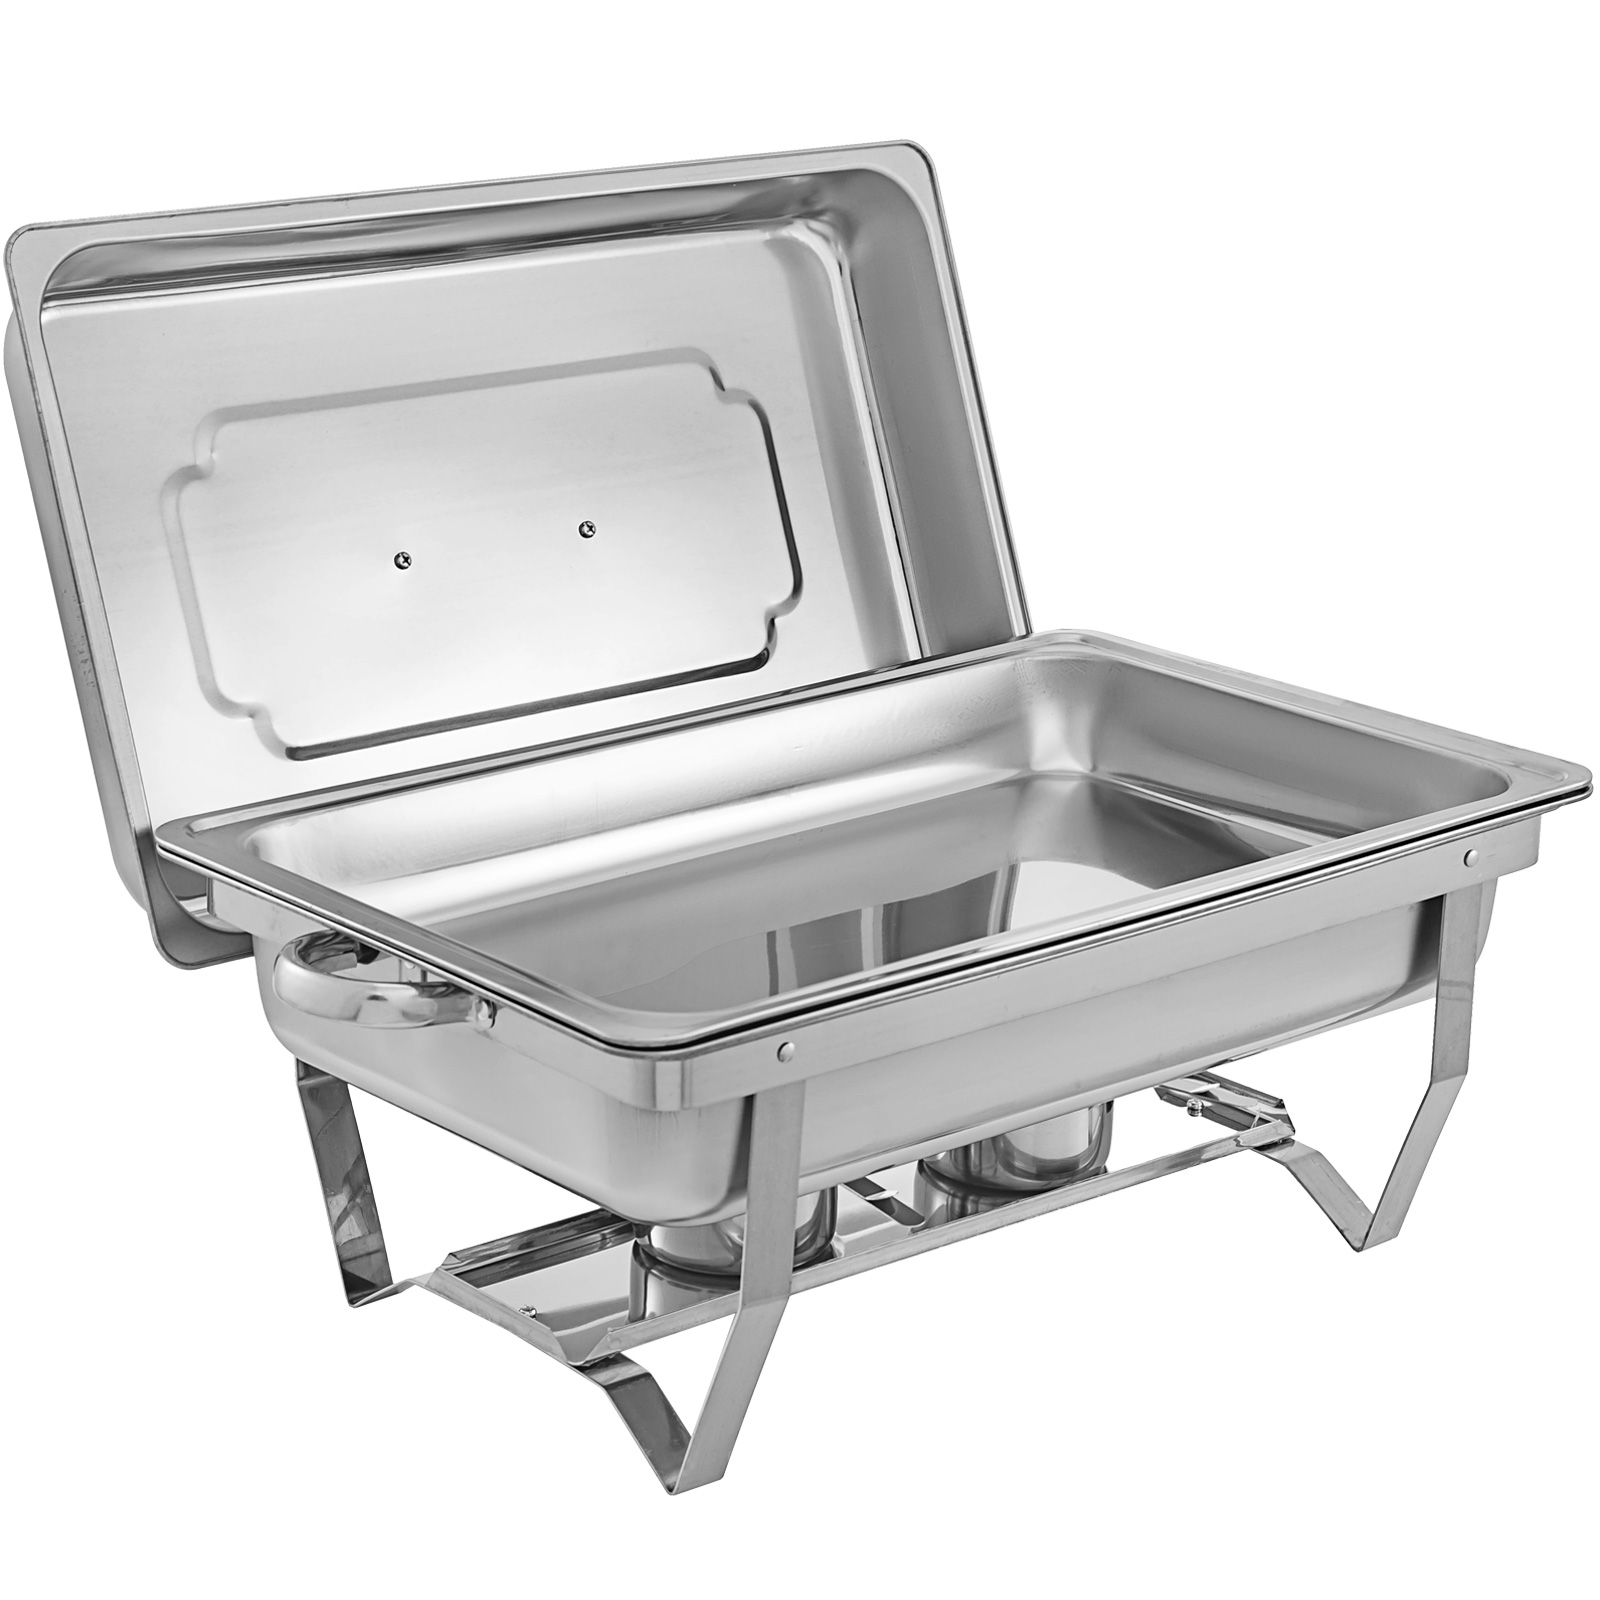 thumbnail 23 - Multi-Stainless-Steel-Chafing-Dish-Bain-Marie-Bow-Catering-Dish-Hotpot-Server